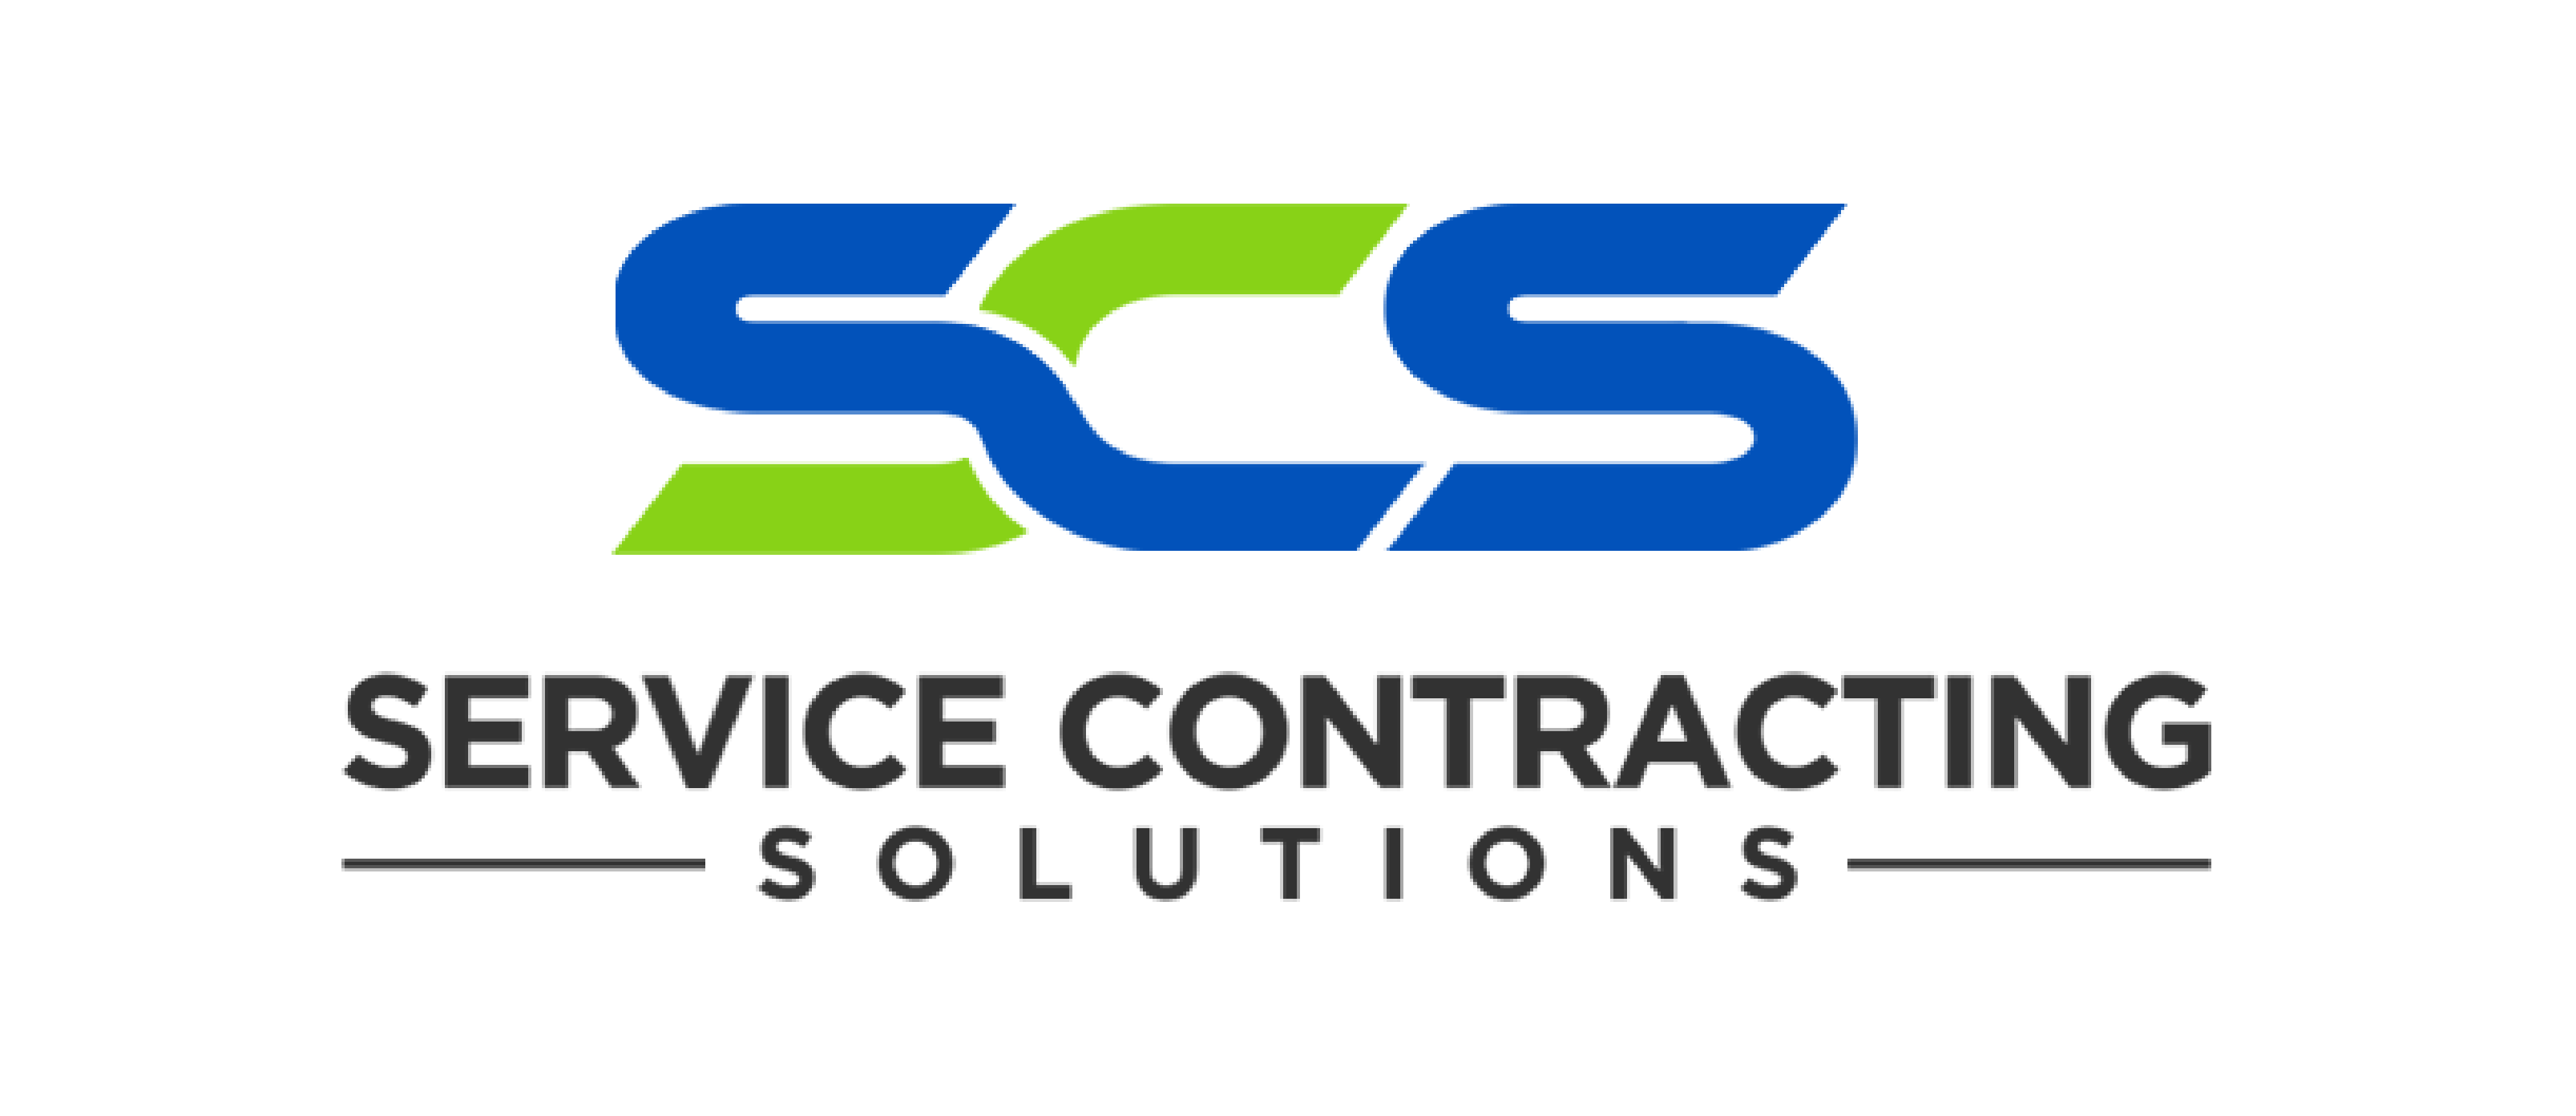 Service Contracting Solutions Logo